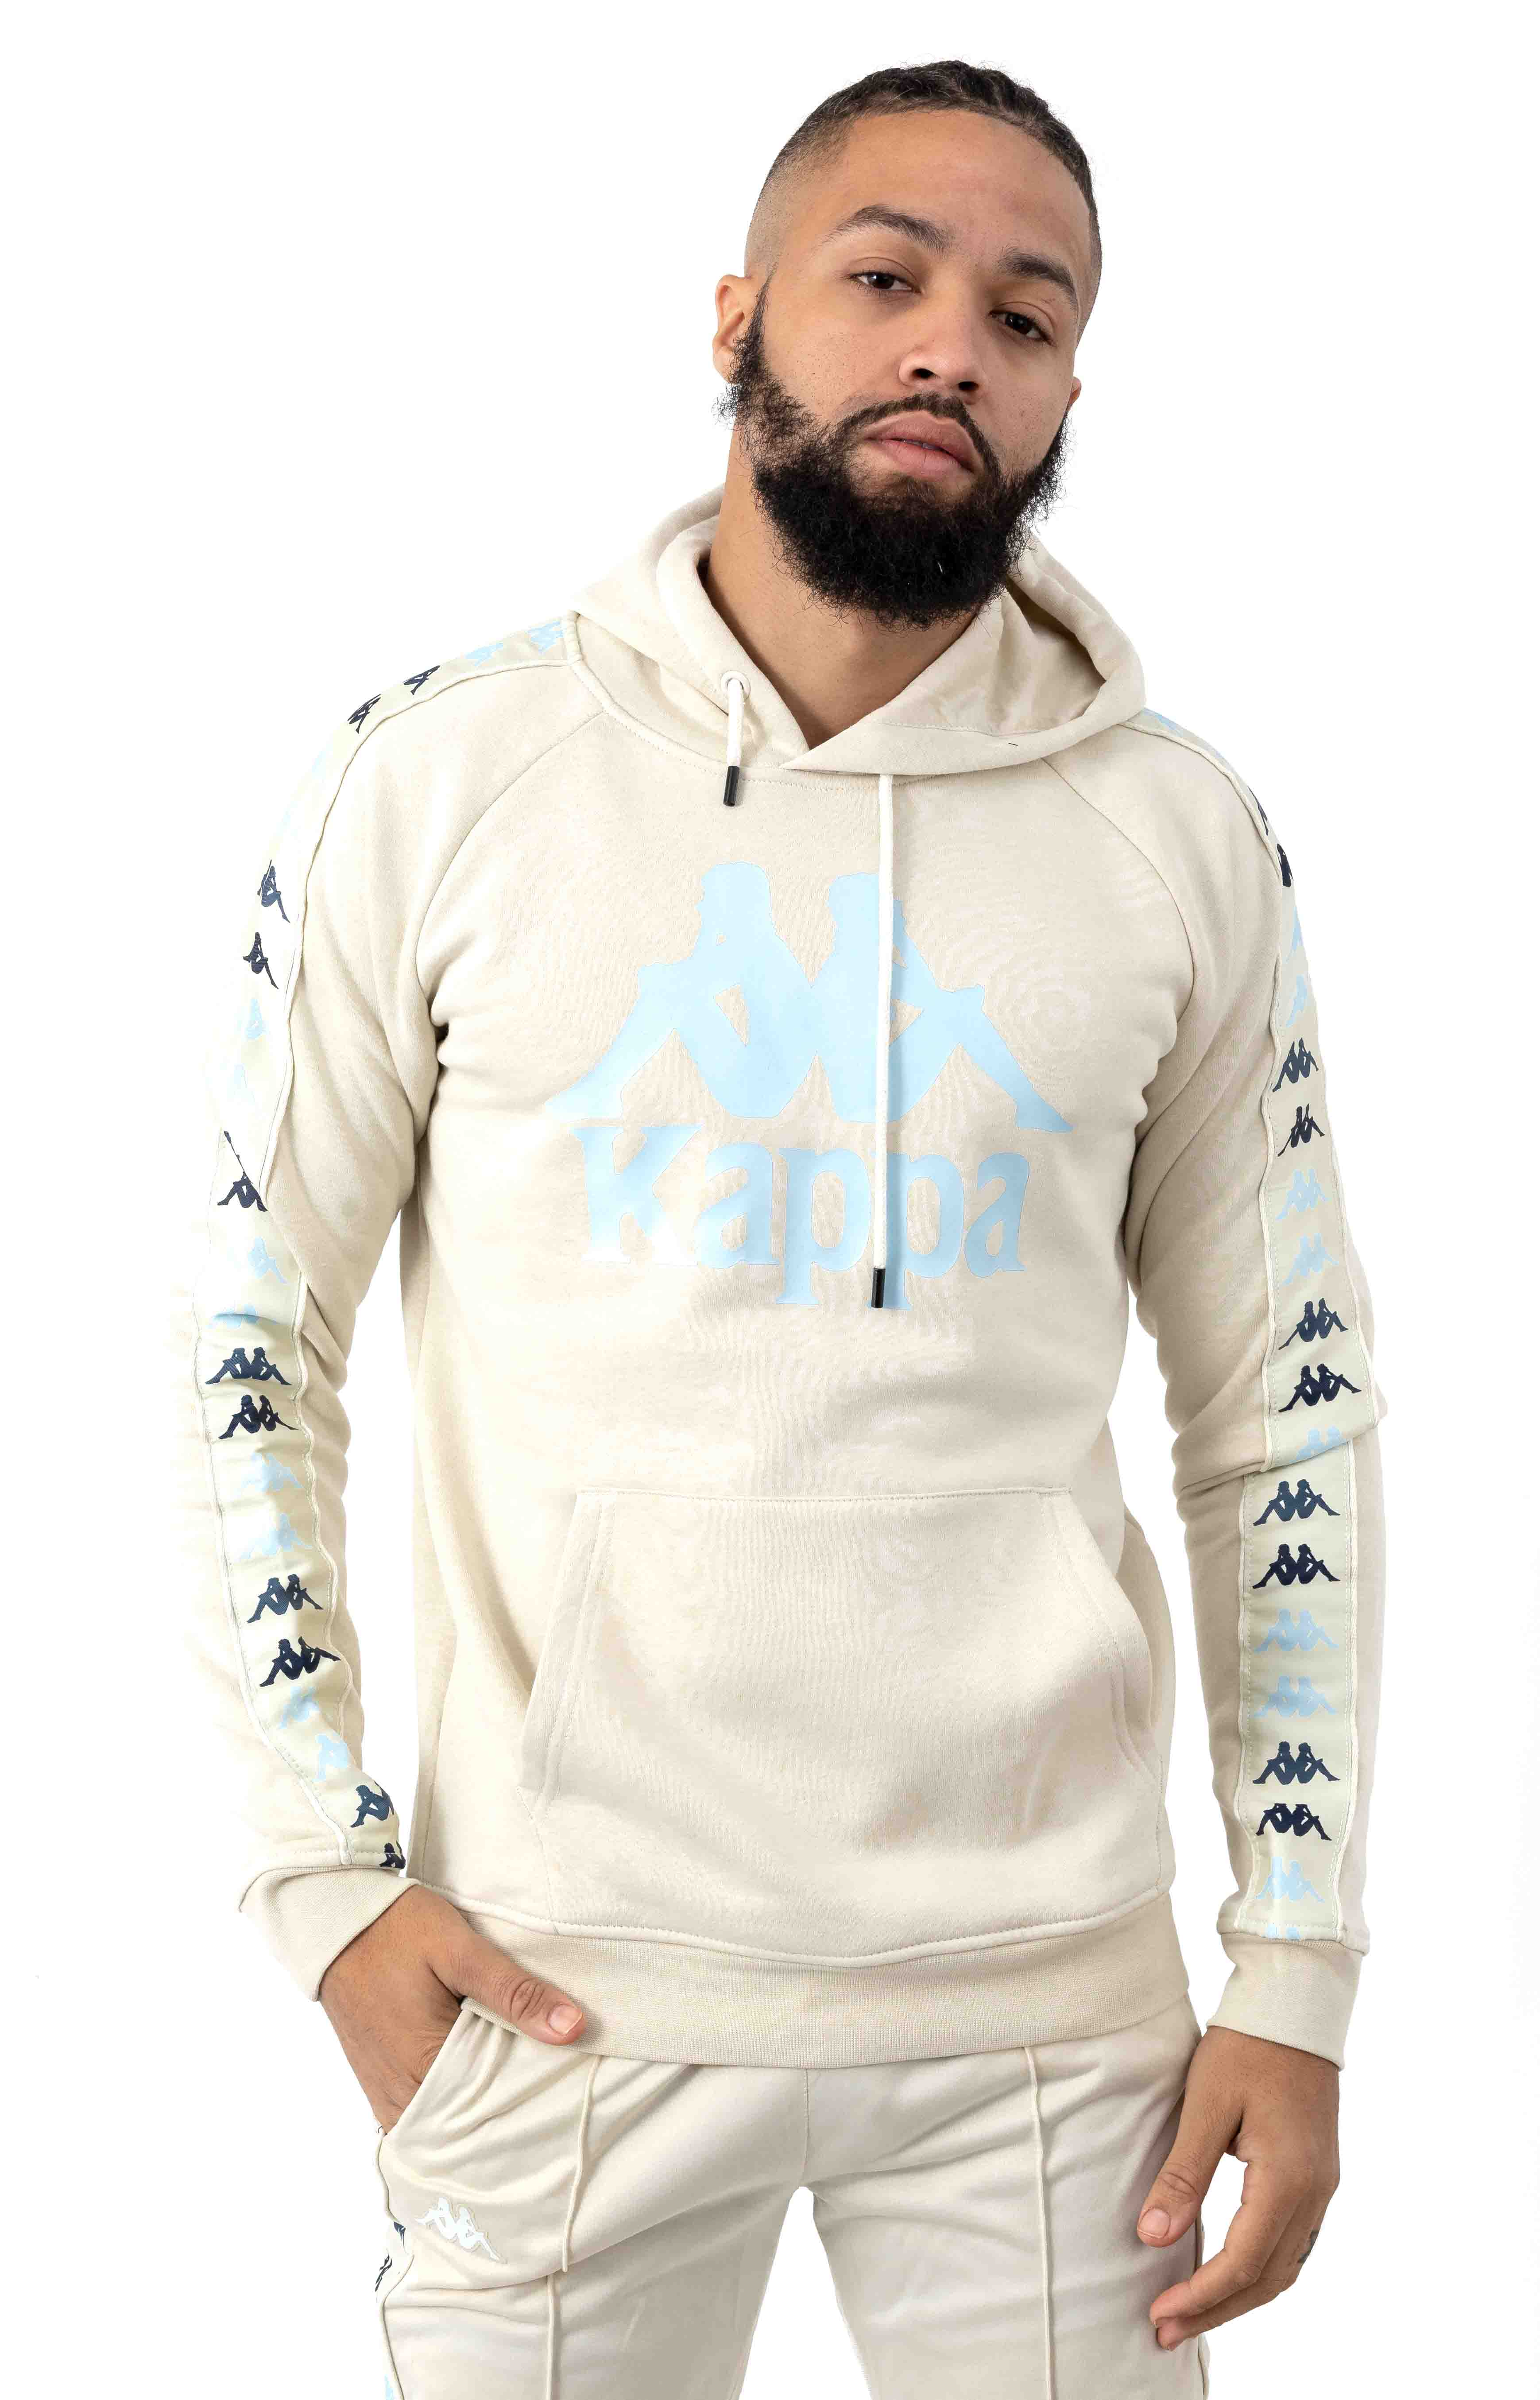 222 Banda Dinto Pullover Hoodie - White Egg/Illusion Blue